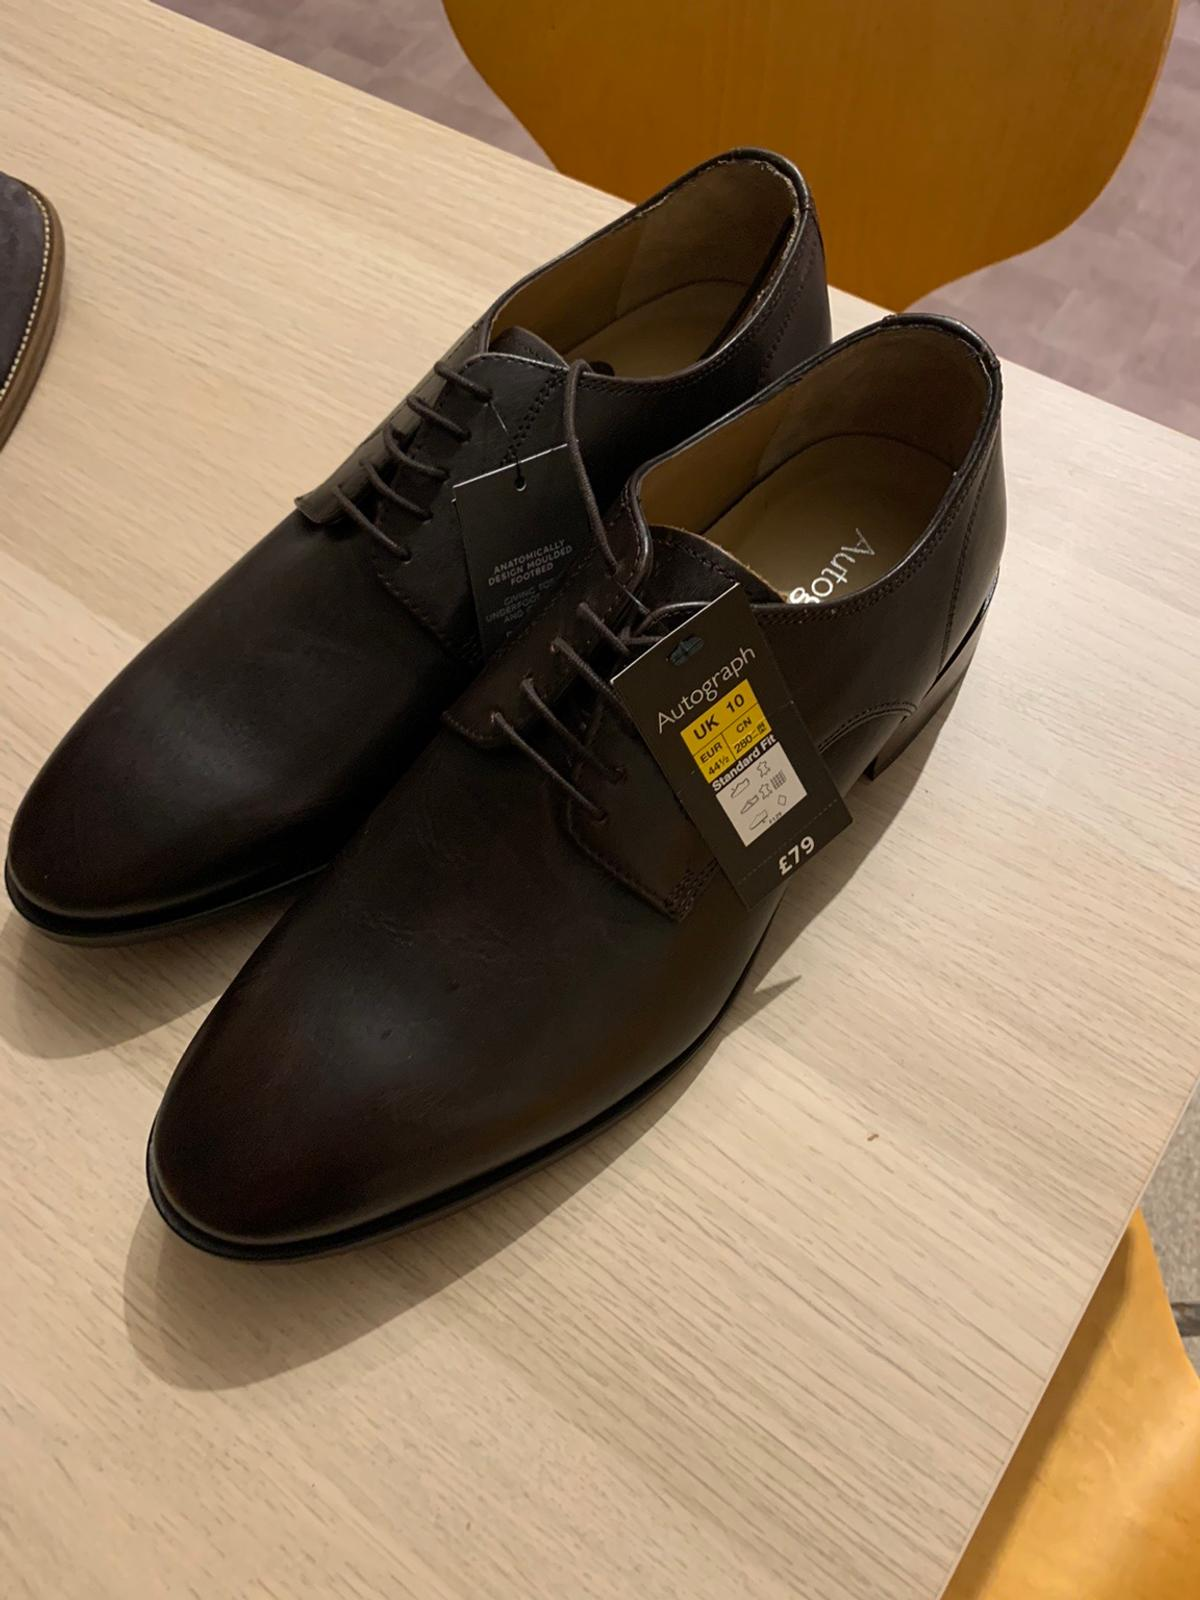 Brand new men's shoes size 9 from M&S. Retail price £79 each. Both brand new with tags and never worn, Selling as unwanted gift. £40 a pair or £70 for both.